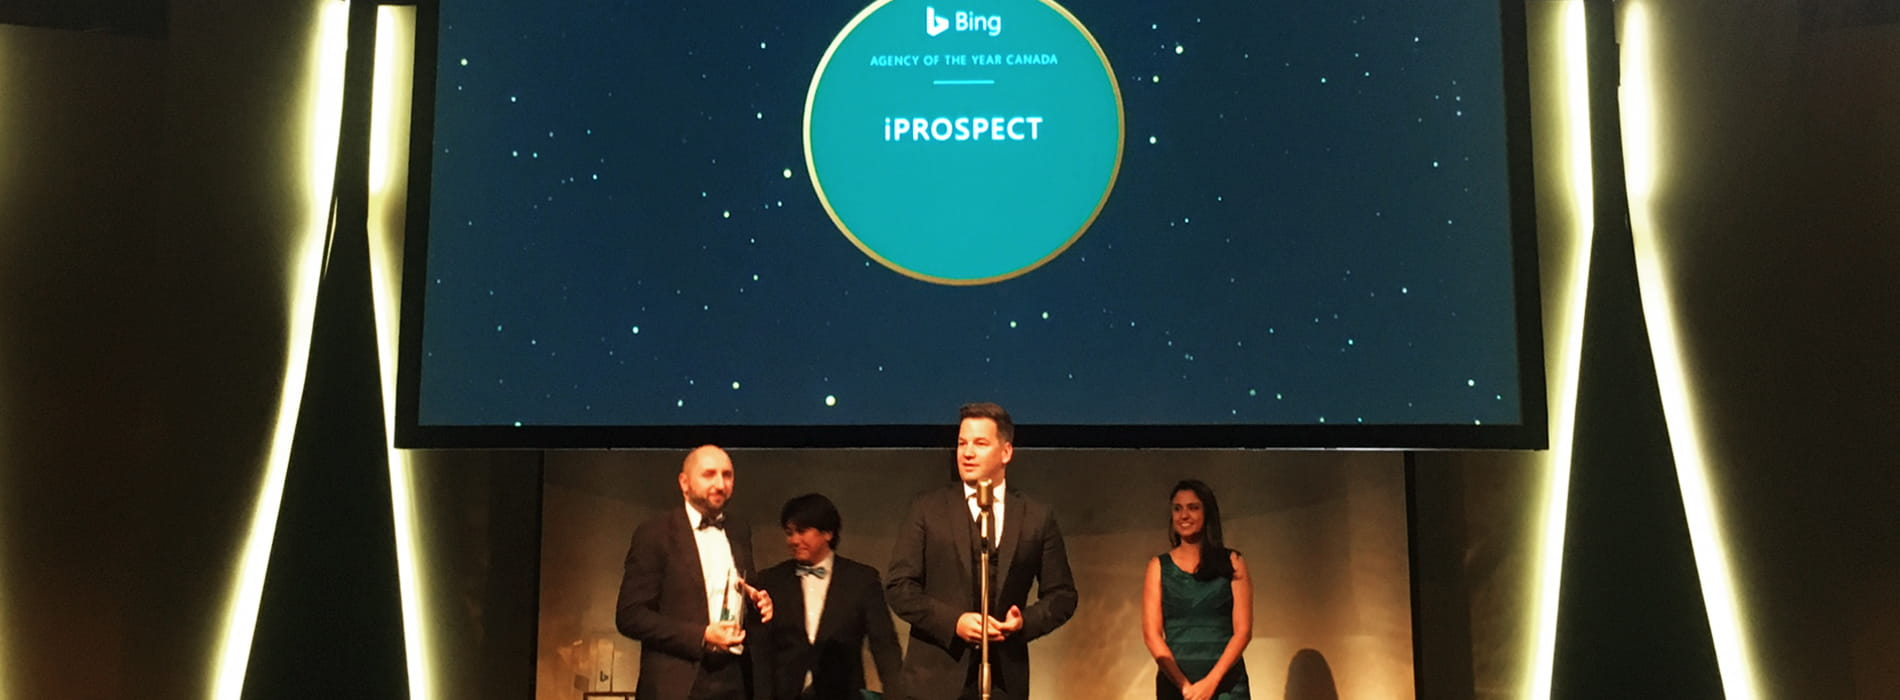 Bing Agency Awards - iProspect Canada Agency of the Year